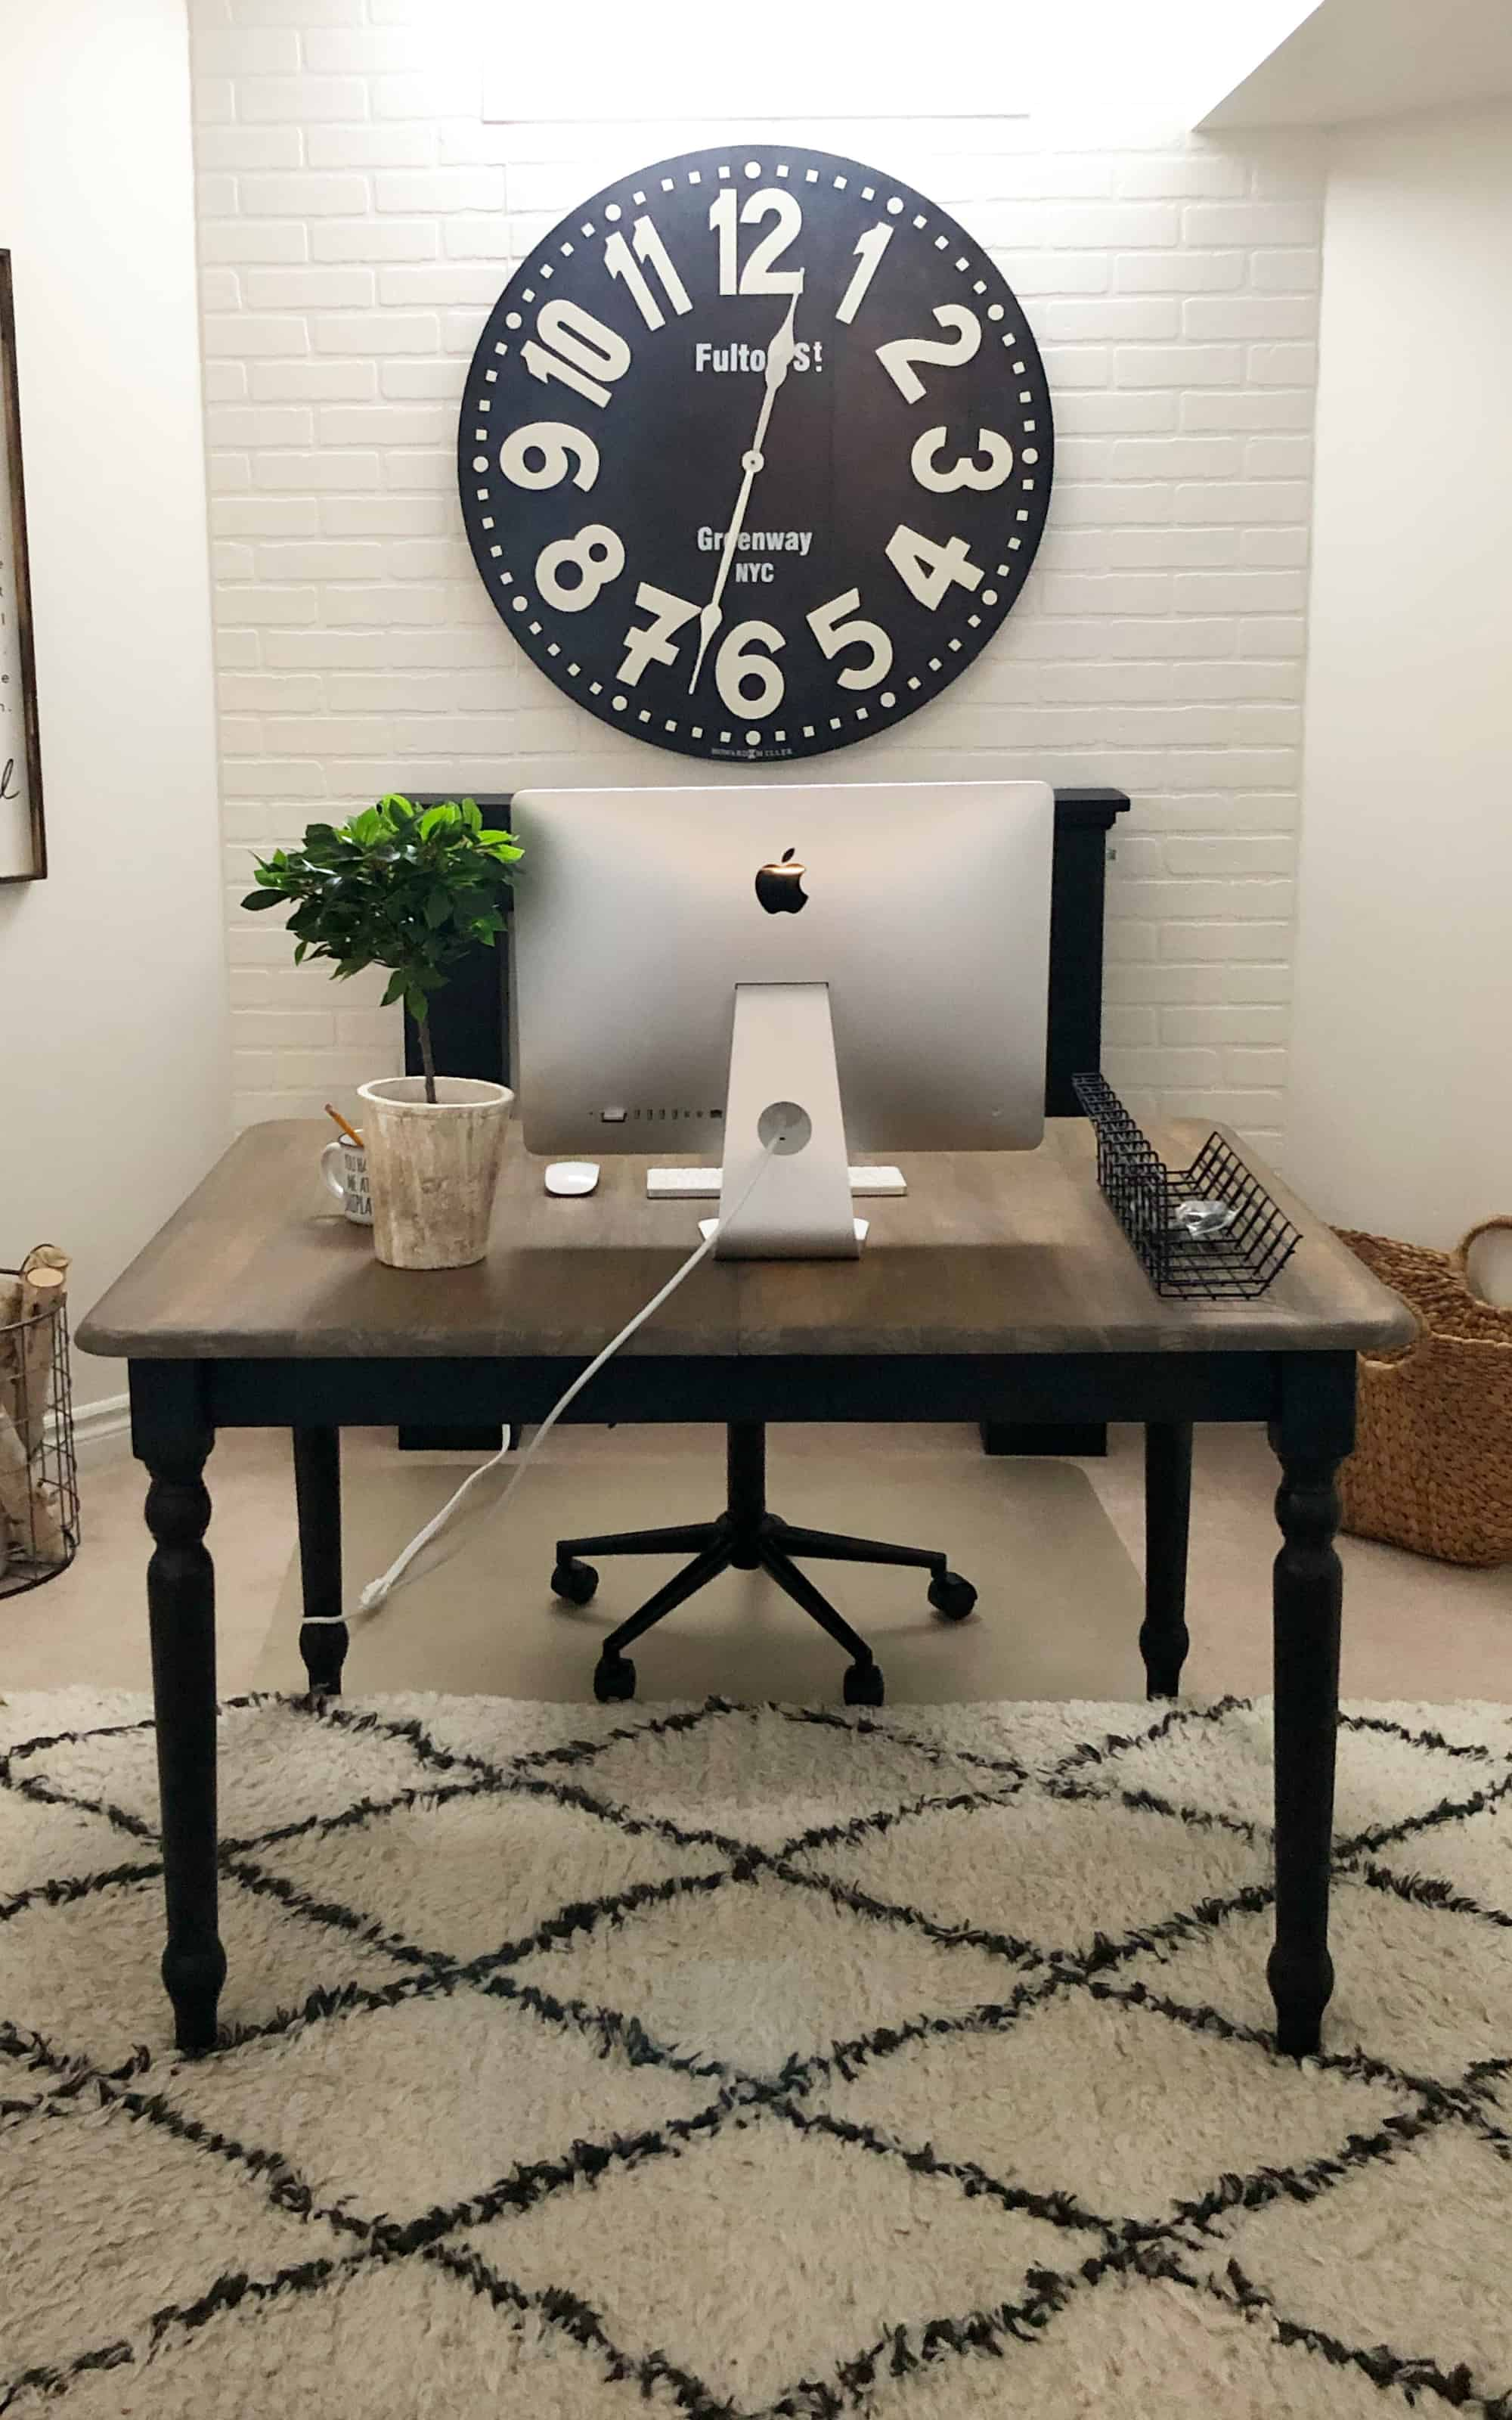 home office with trellis rug, mac on table desk and large black wall clock